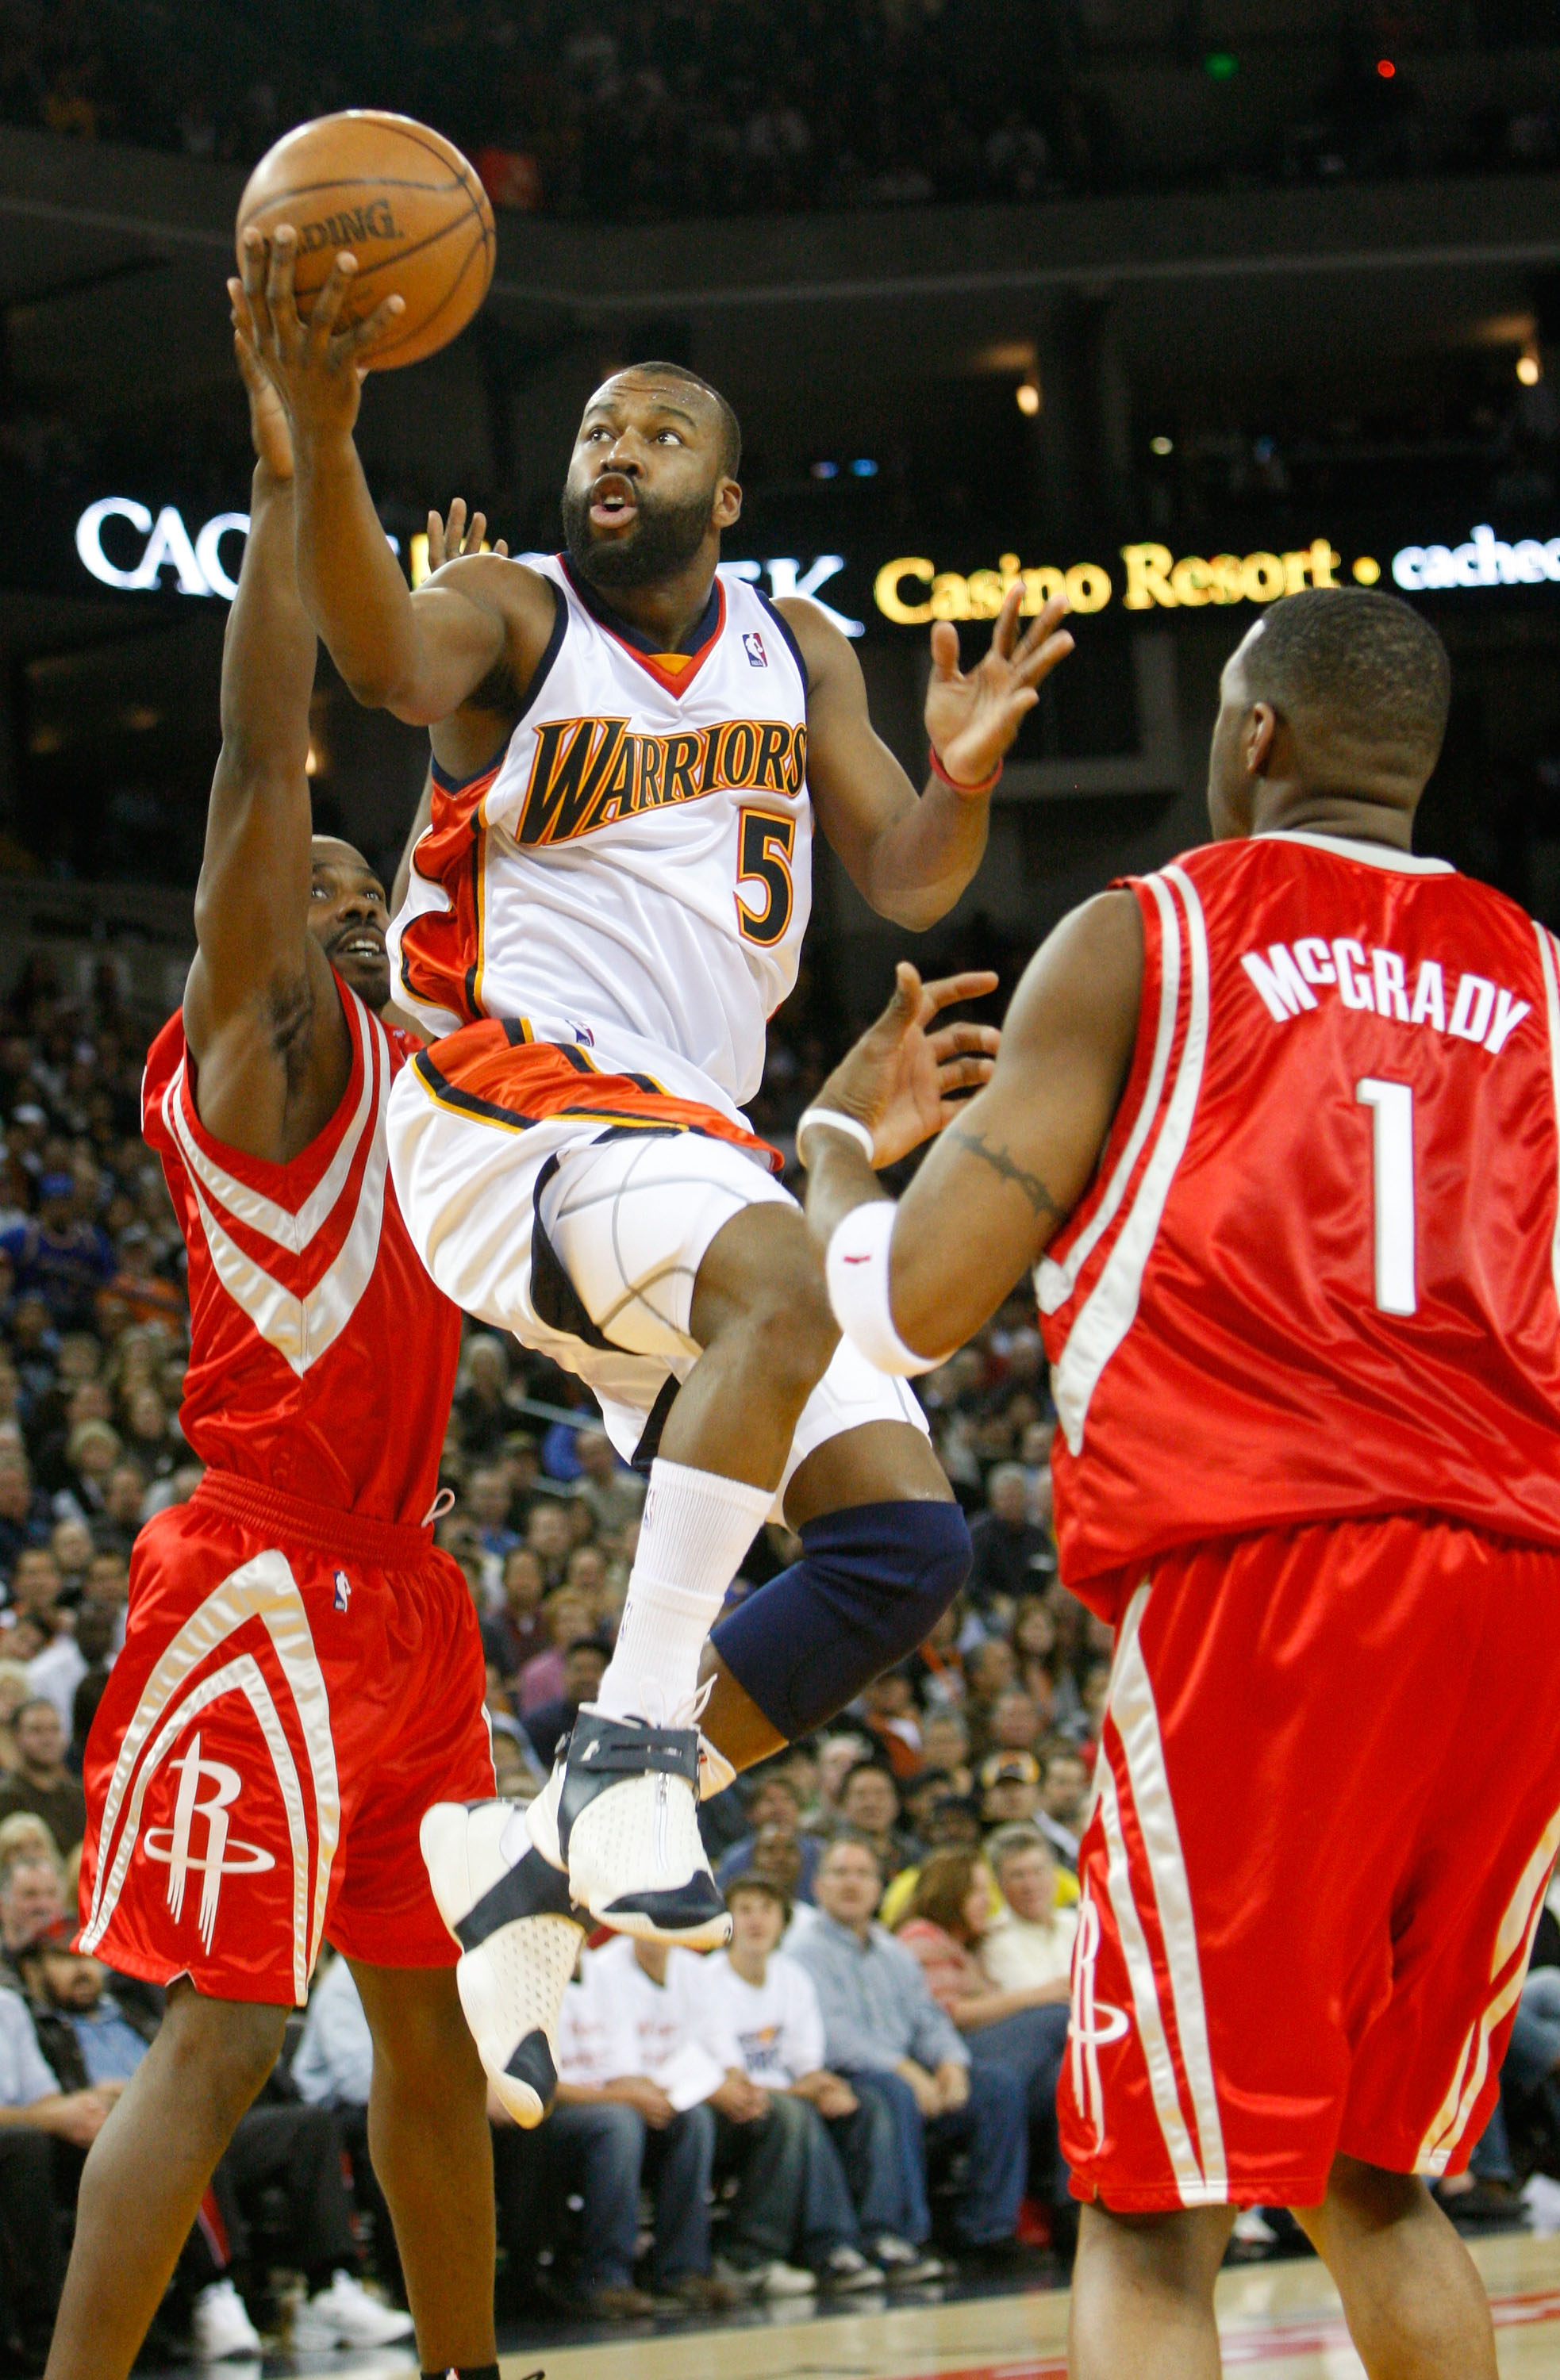 OAKLAND, CA - NOVEMBER 29:  Baron Davis #5 of the Golden State Warriors goes up for a shot as Tracy McGrady #1 of the Houston Rockets looks on during the second half November 29, 2007 at the Oracle Arena in Oakland, California. NOTE TO USER: User expressl